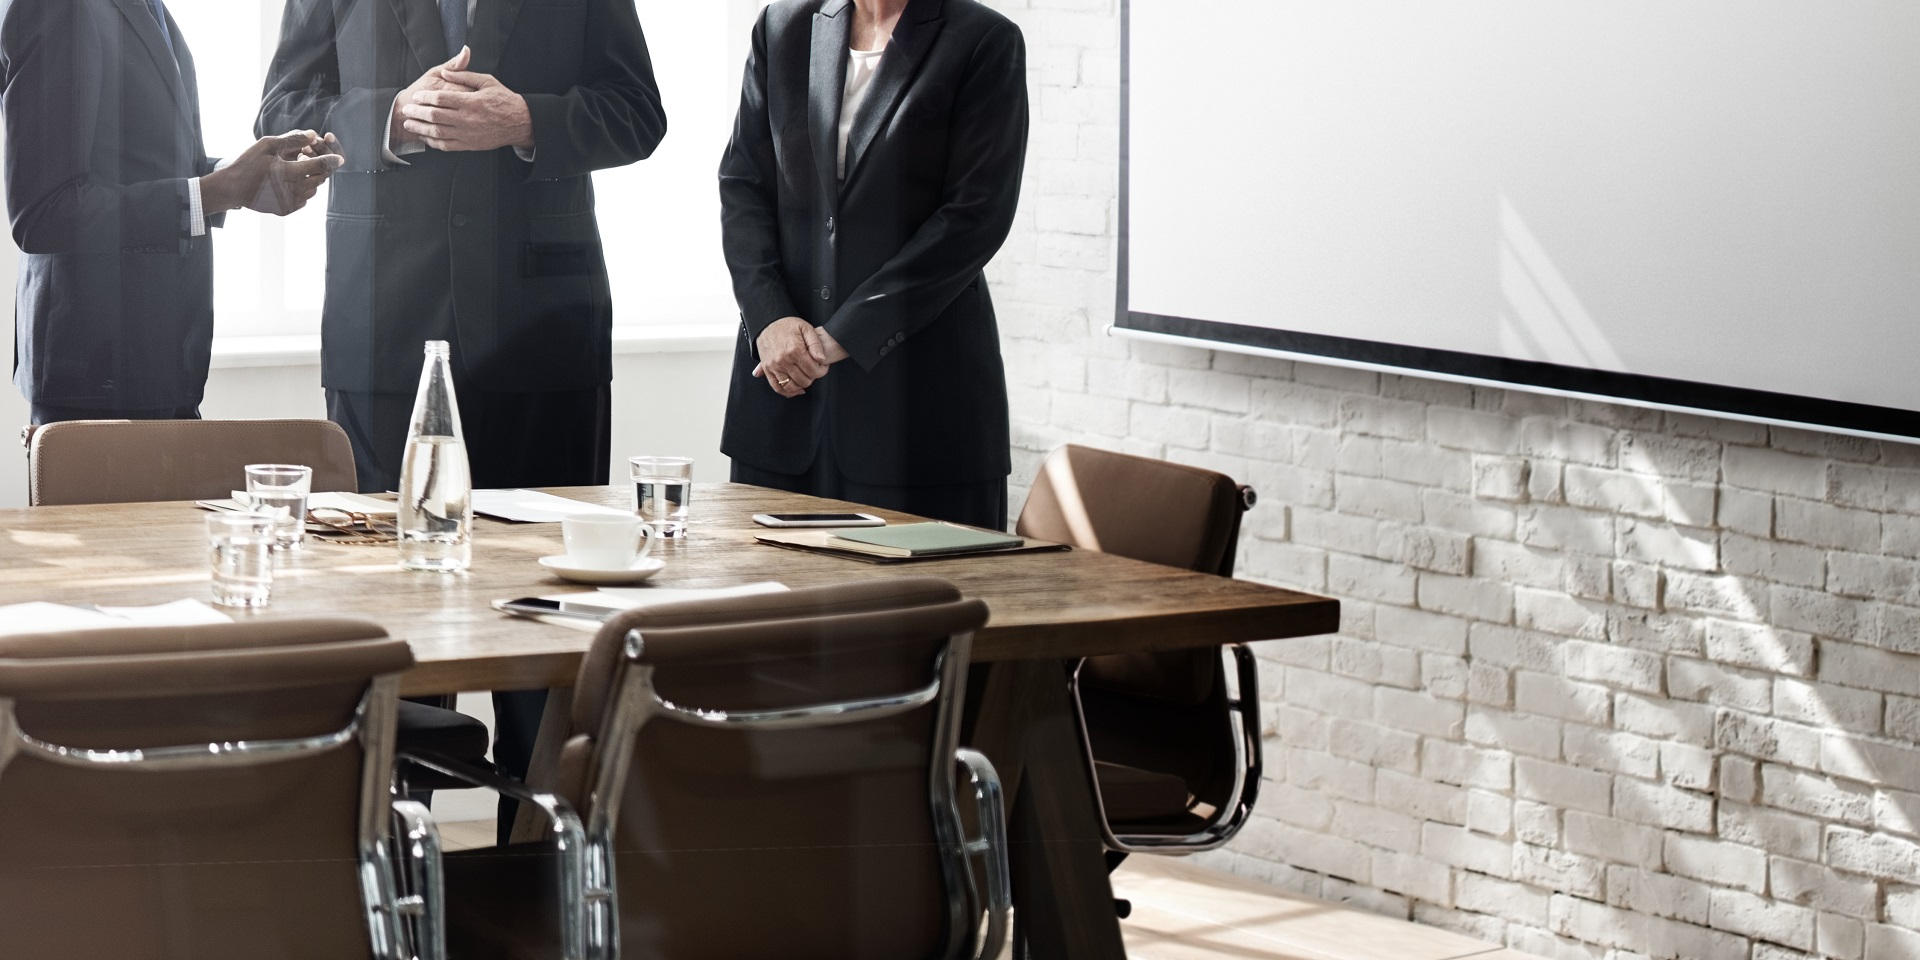 Business people talking in a meeting